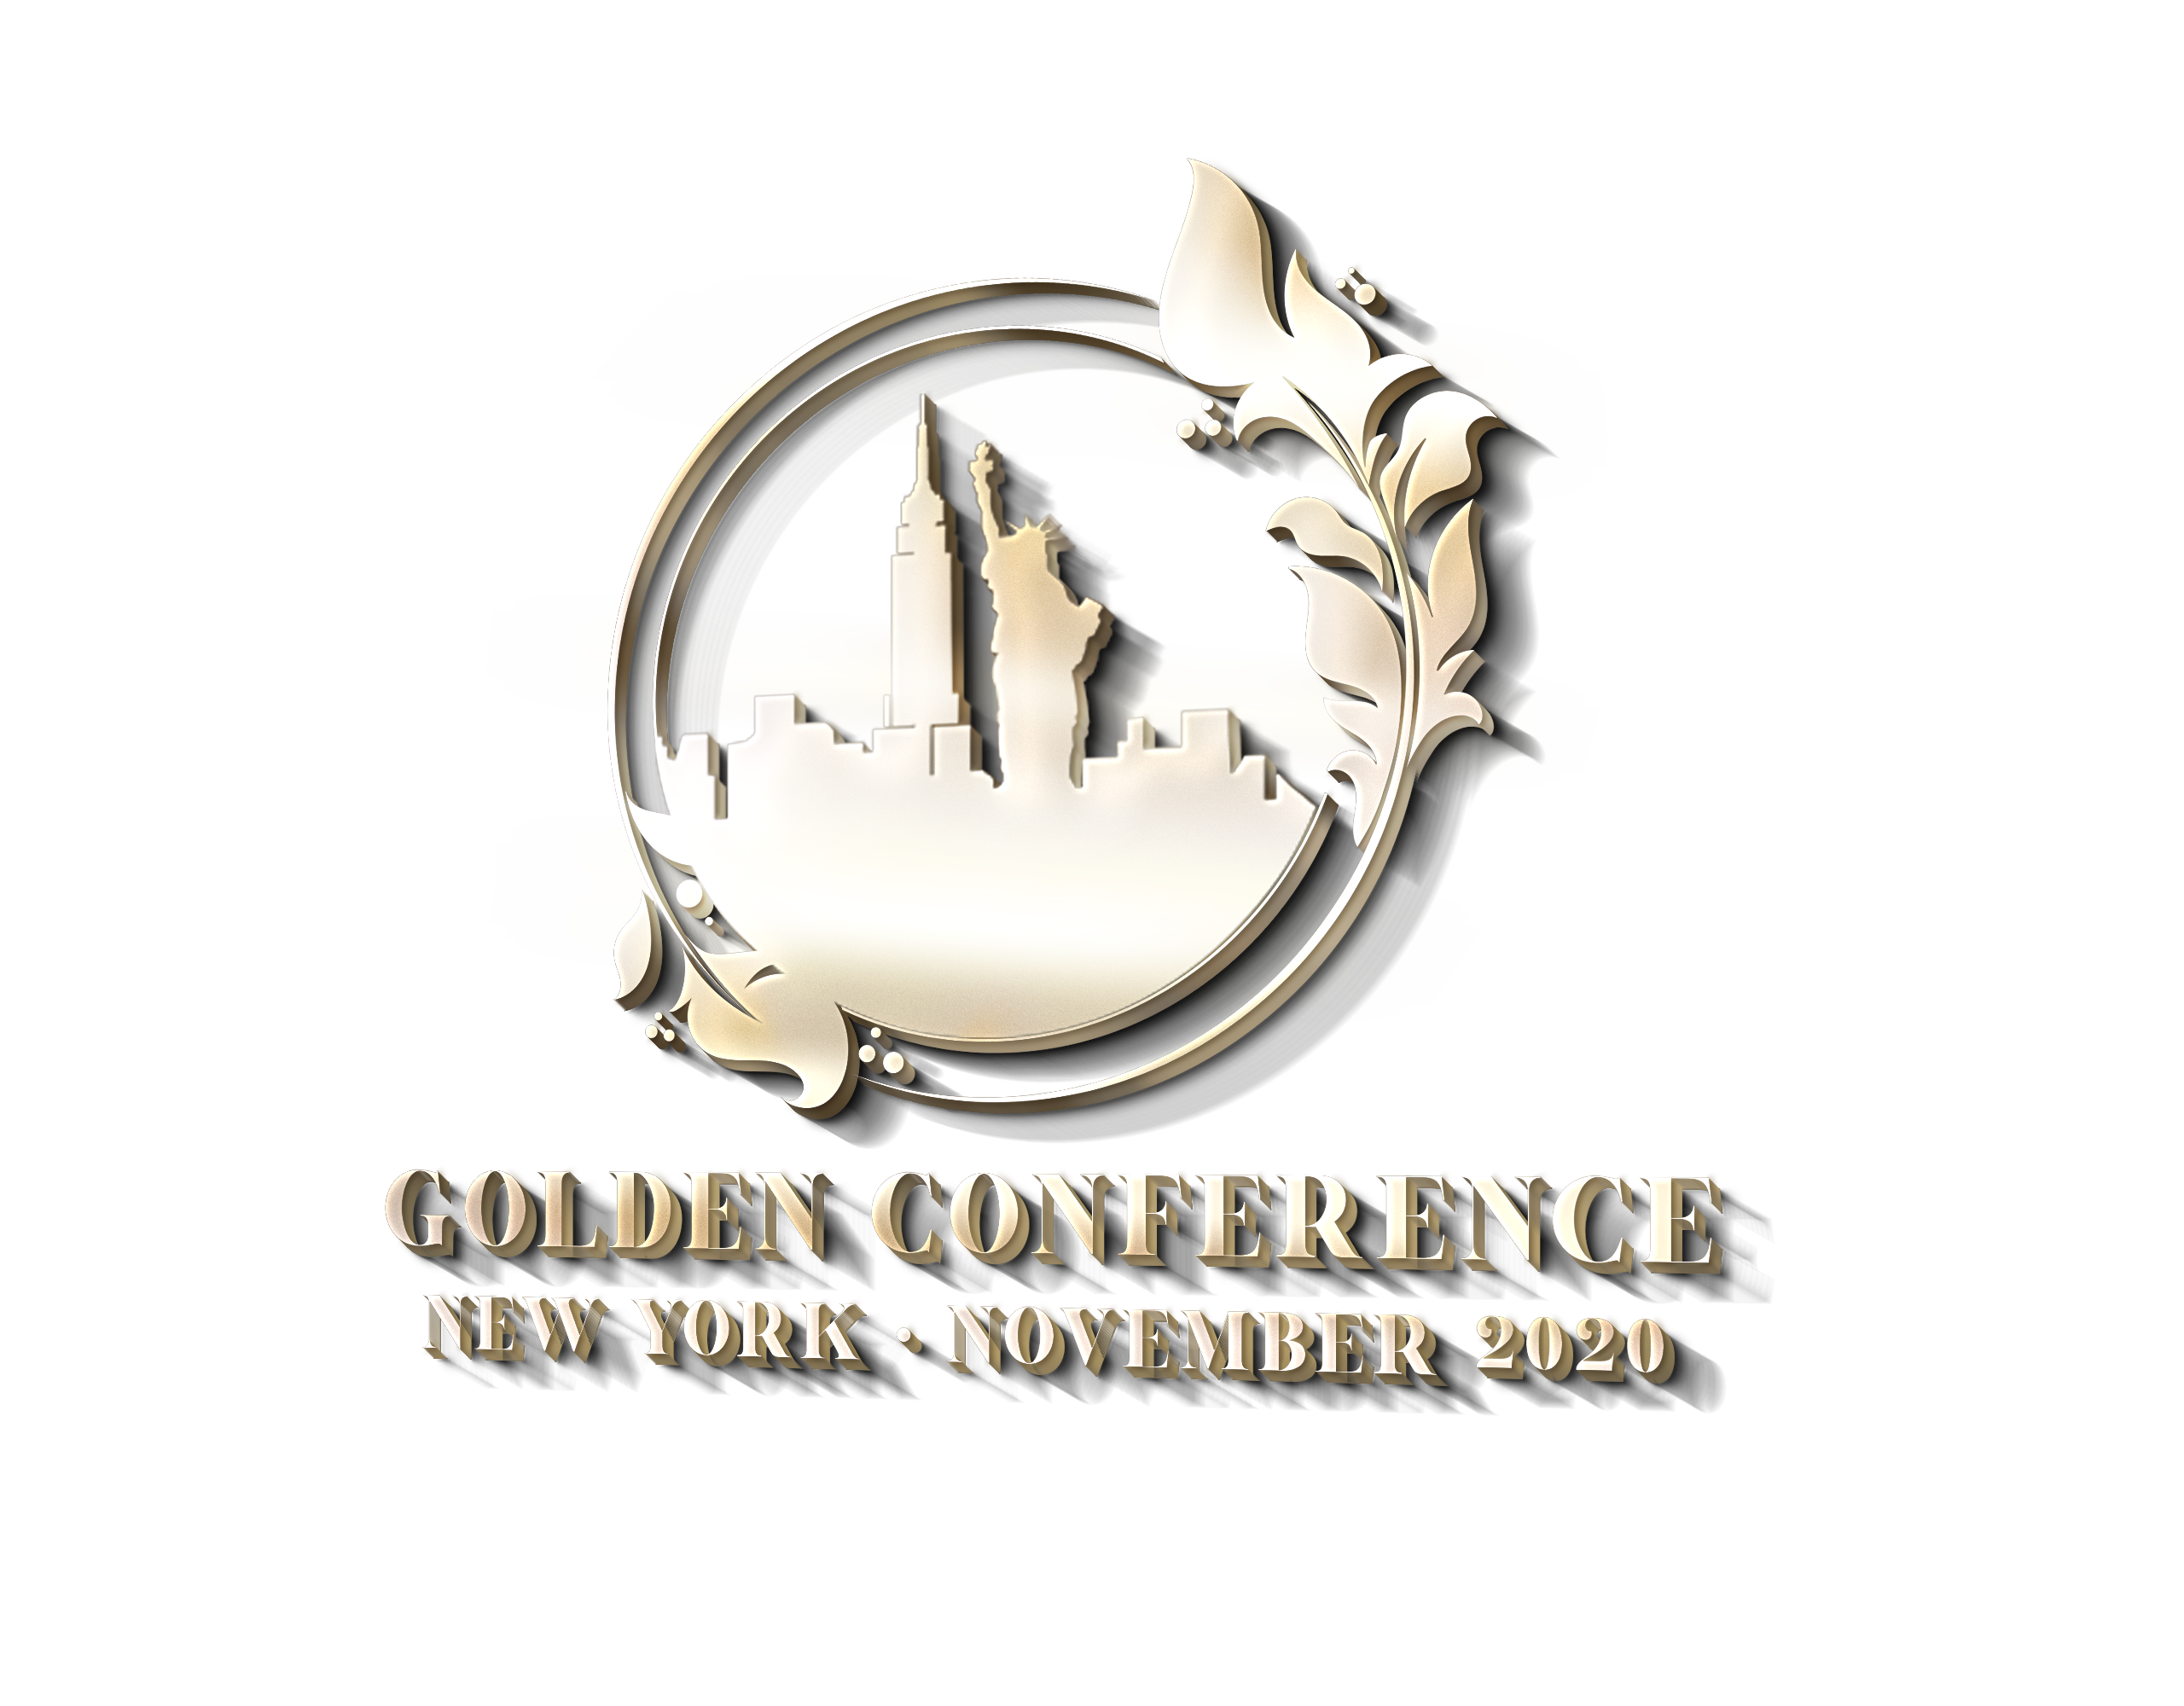 Golden Conference